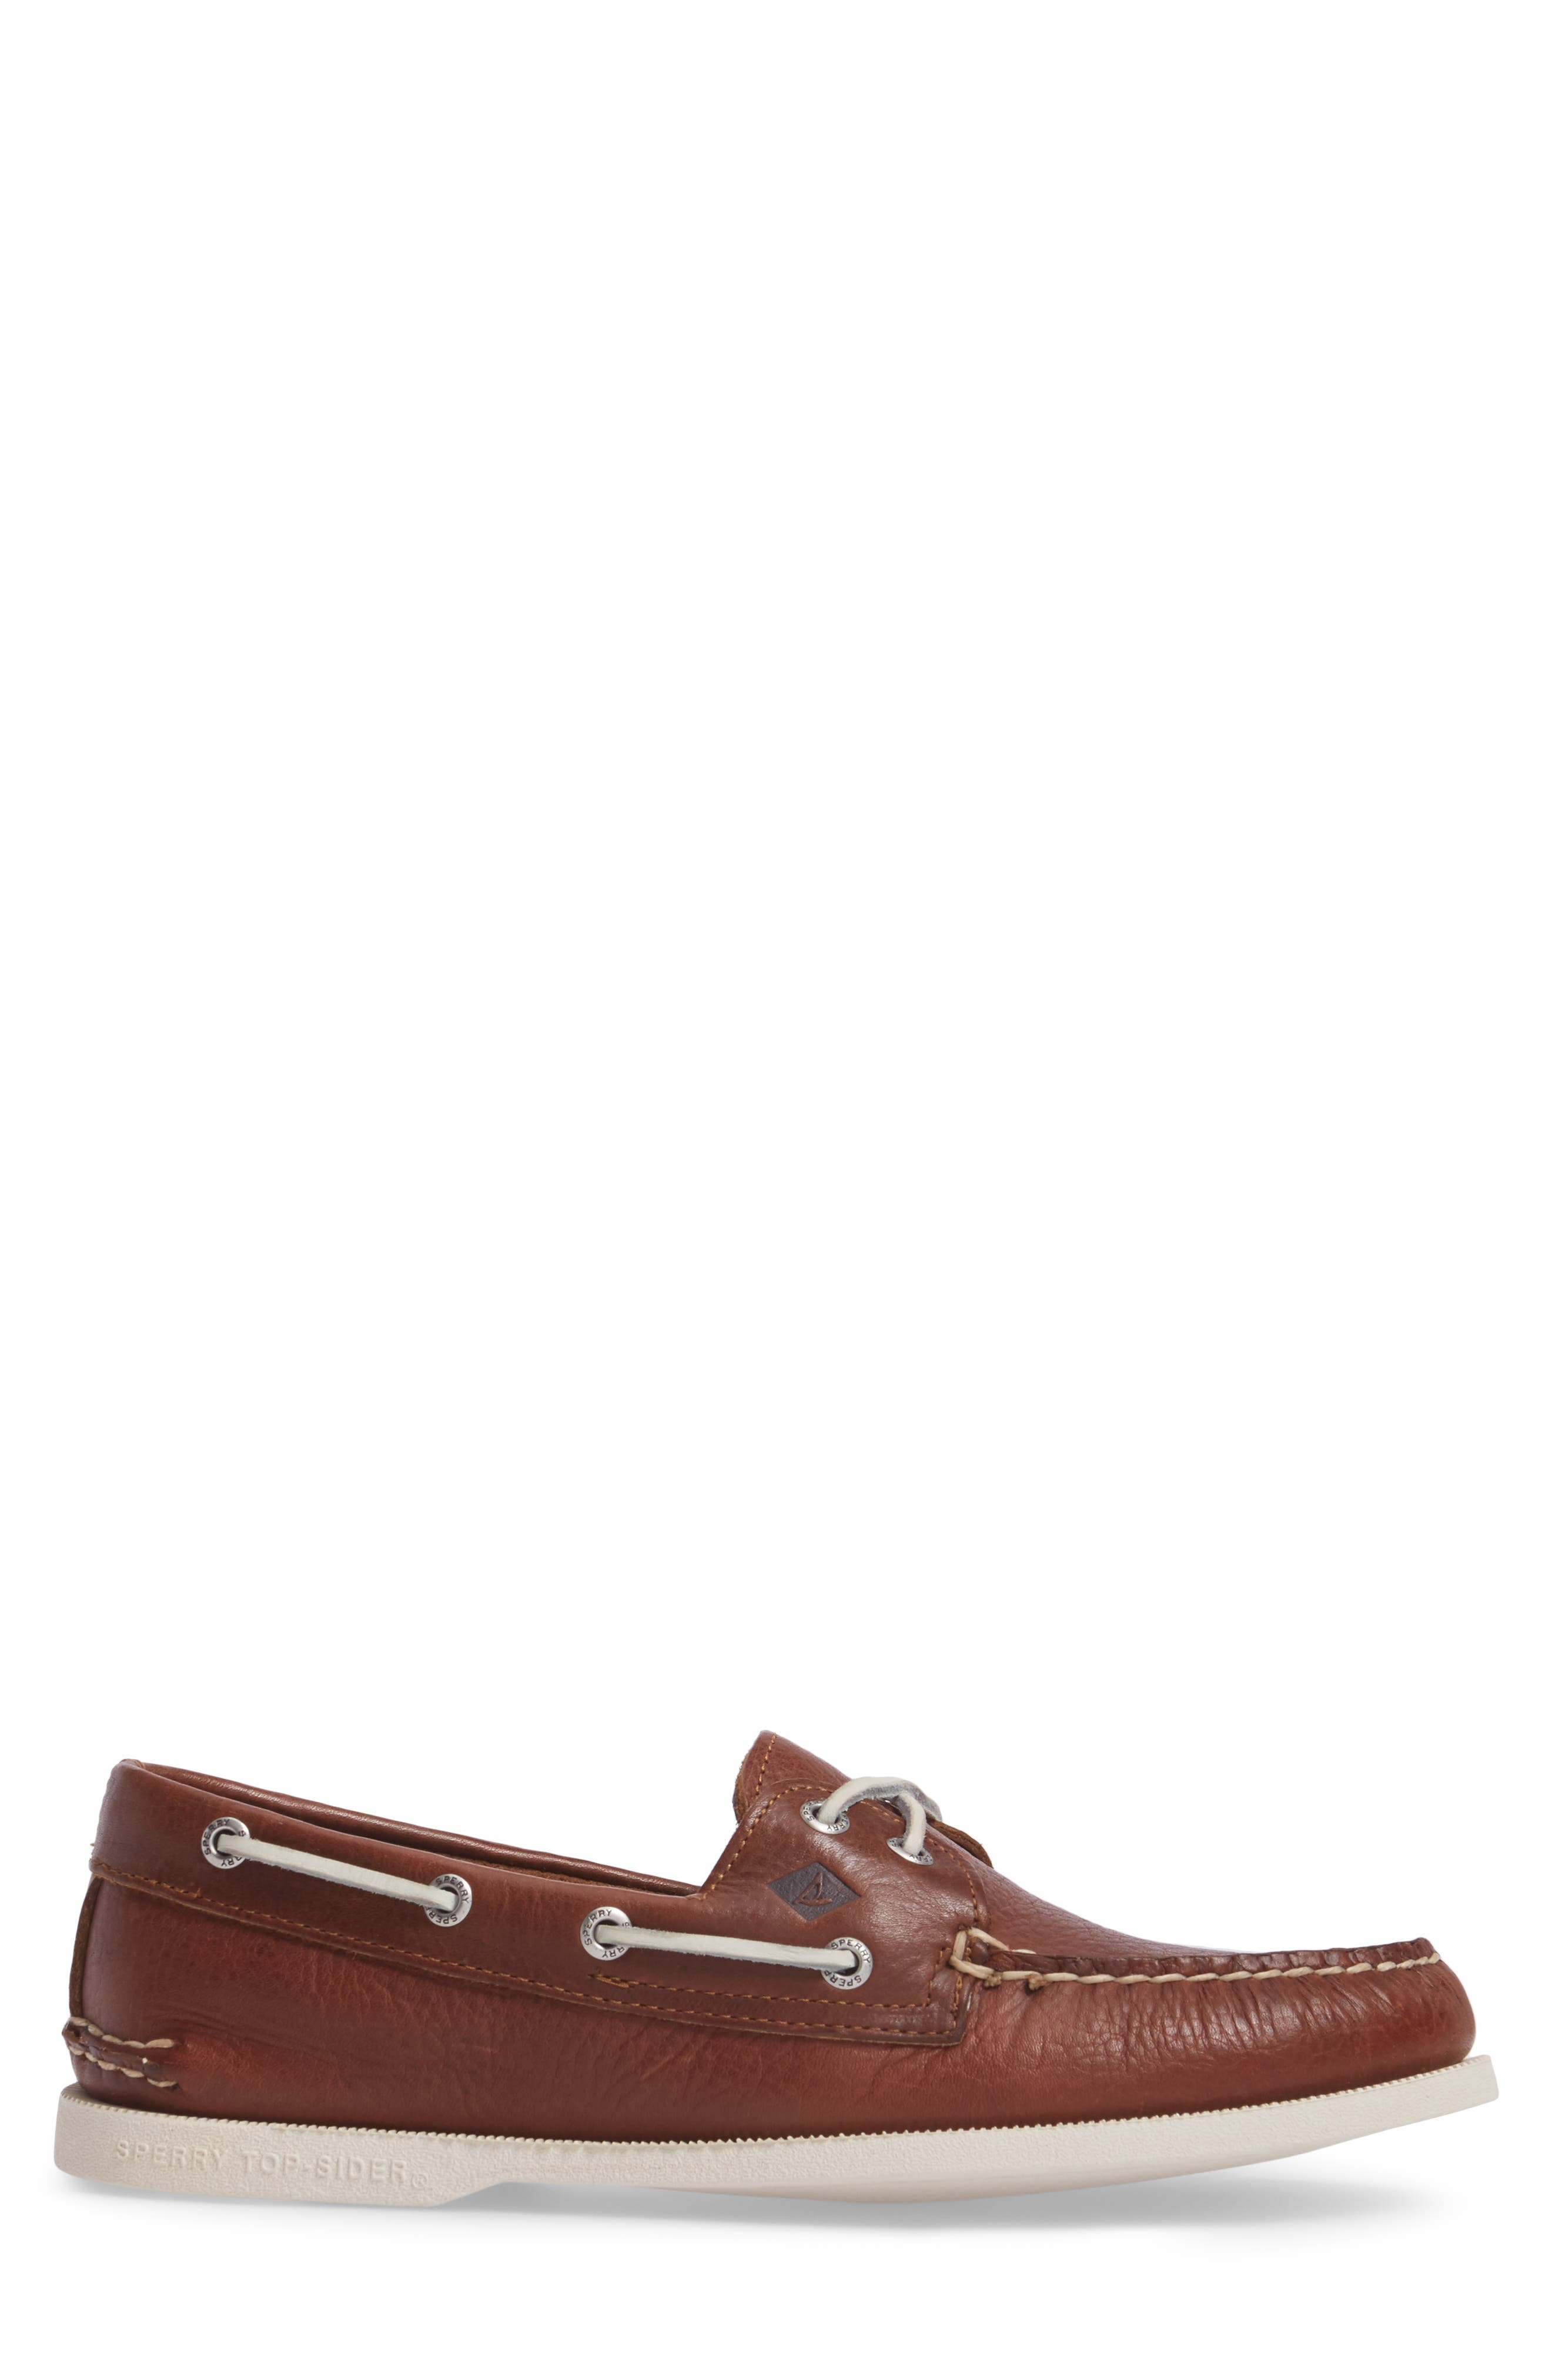 Authentic Original Boat Shoe,                             Alternate thumbnail 3, color,                             Brown Leather